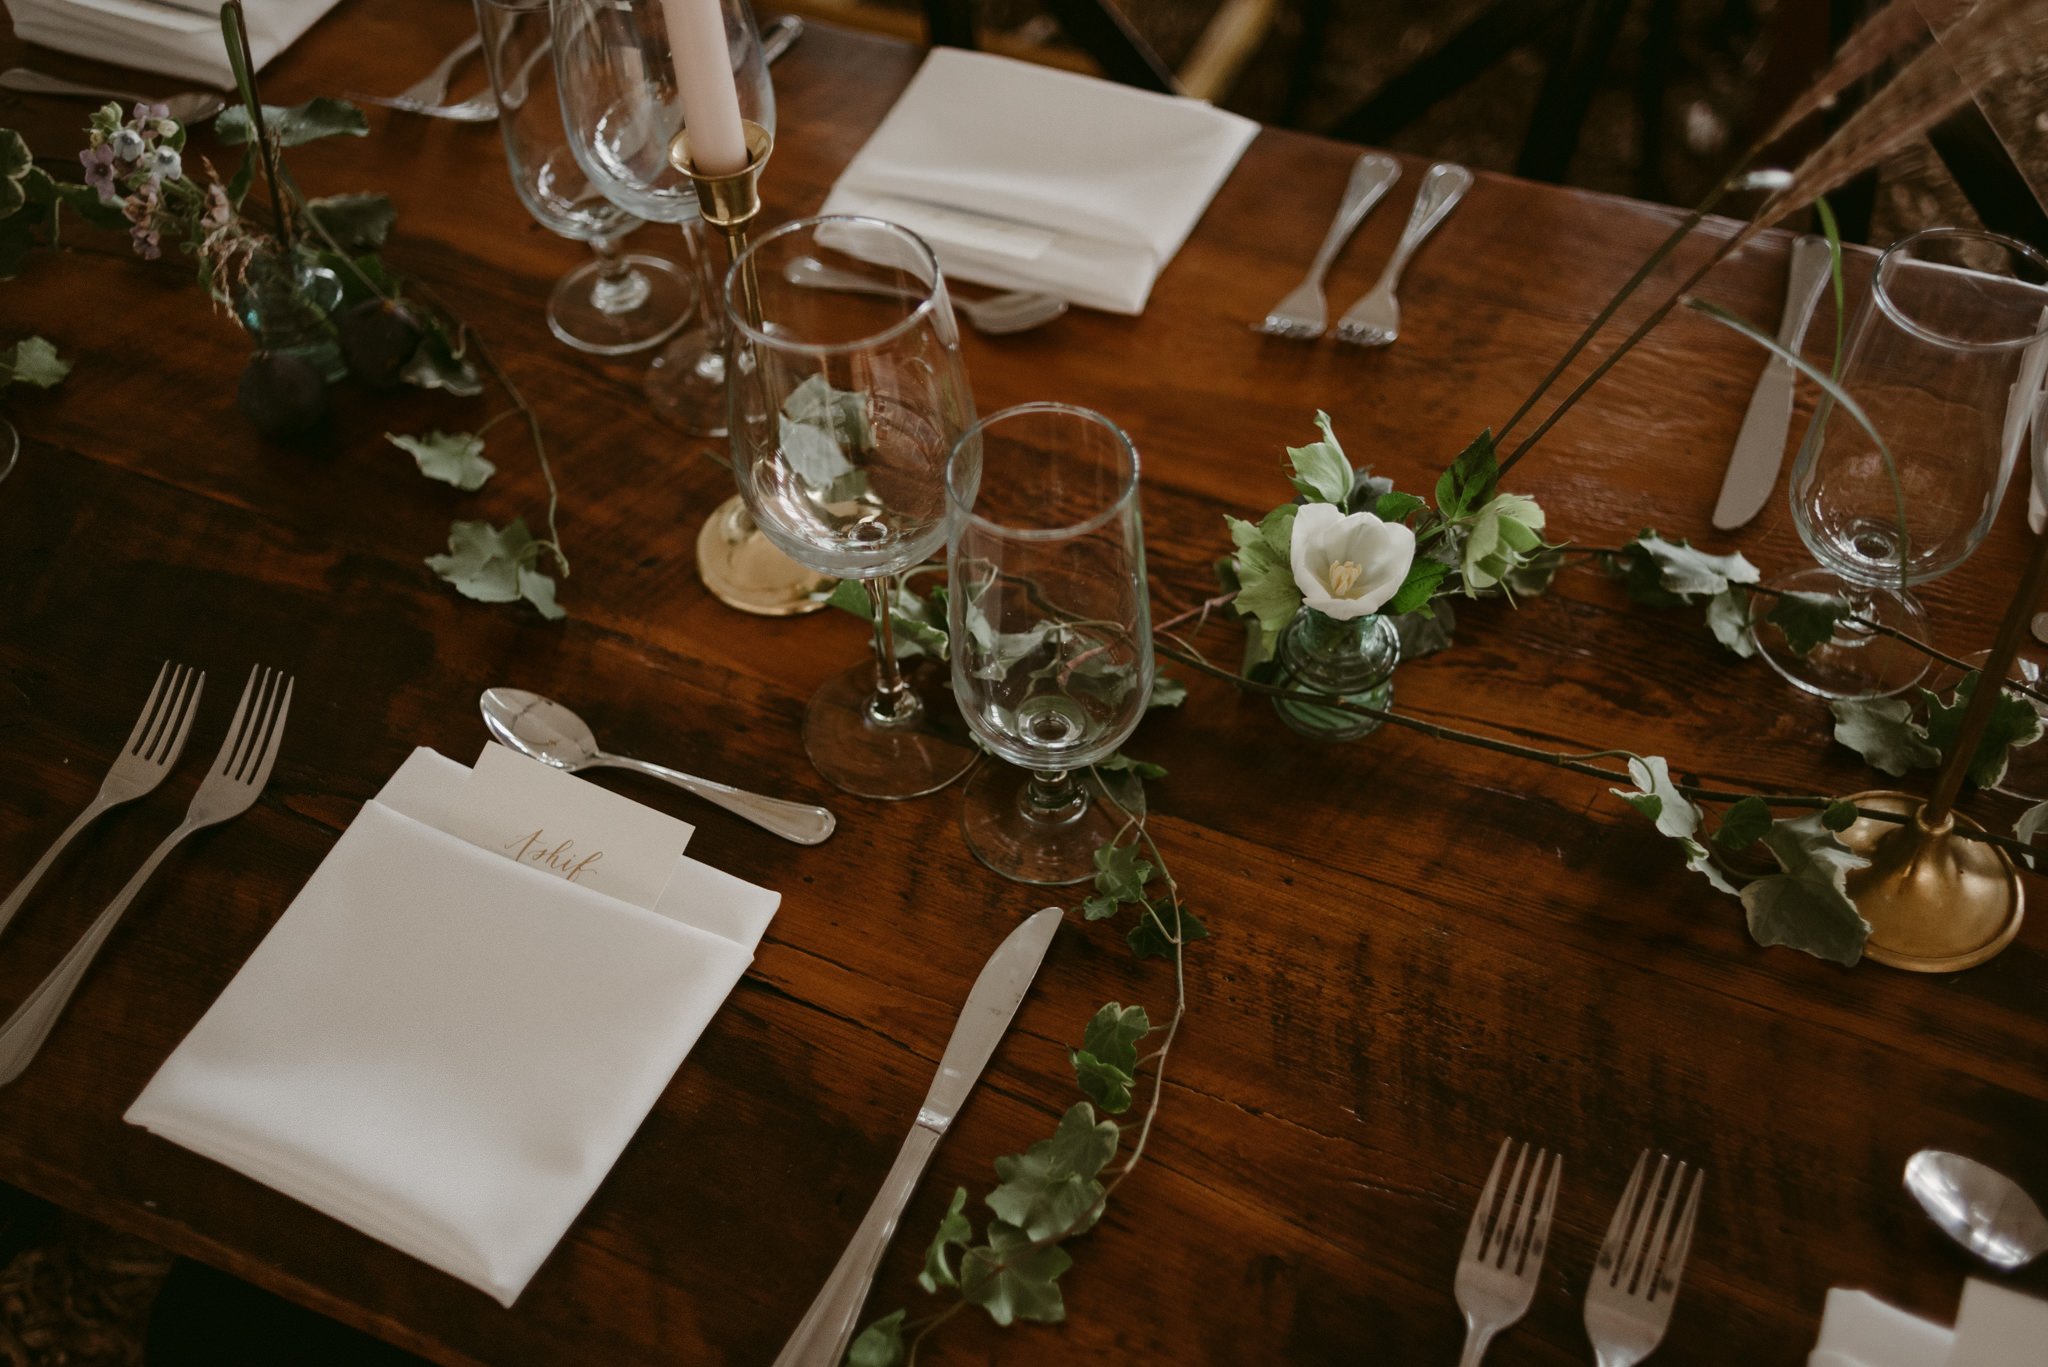 vines and dinnerware on table for wedding reception